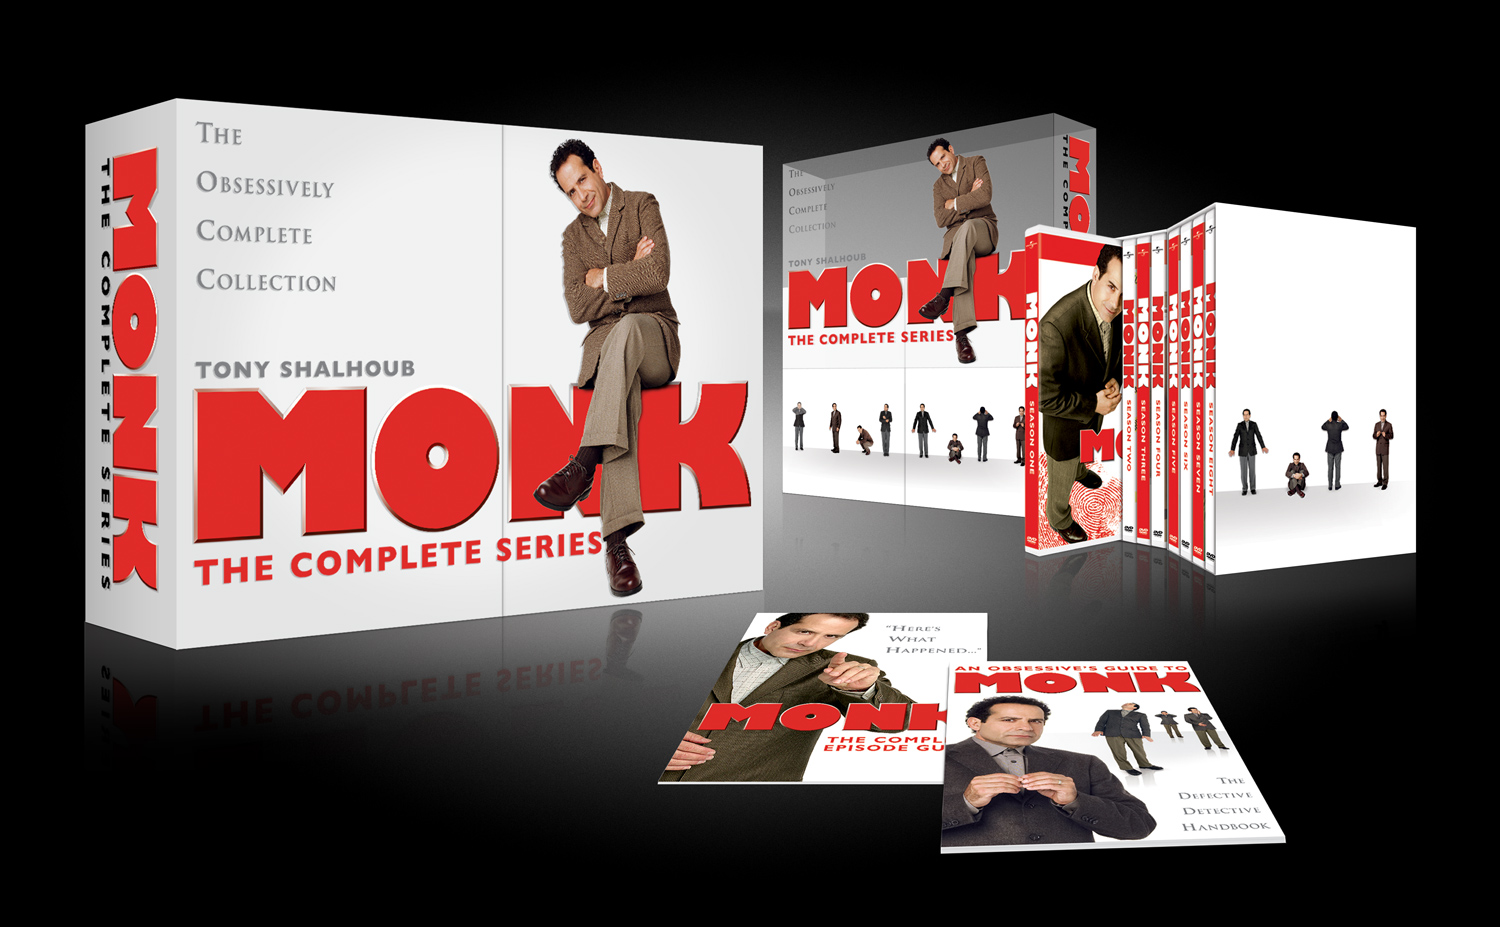 Monk_Collection_01.jpg